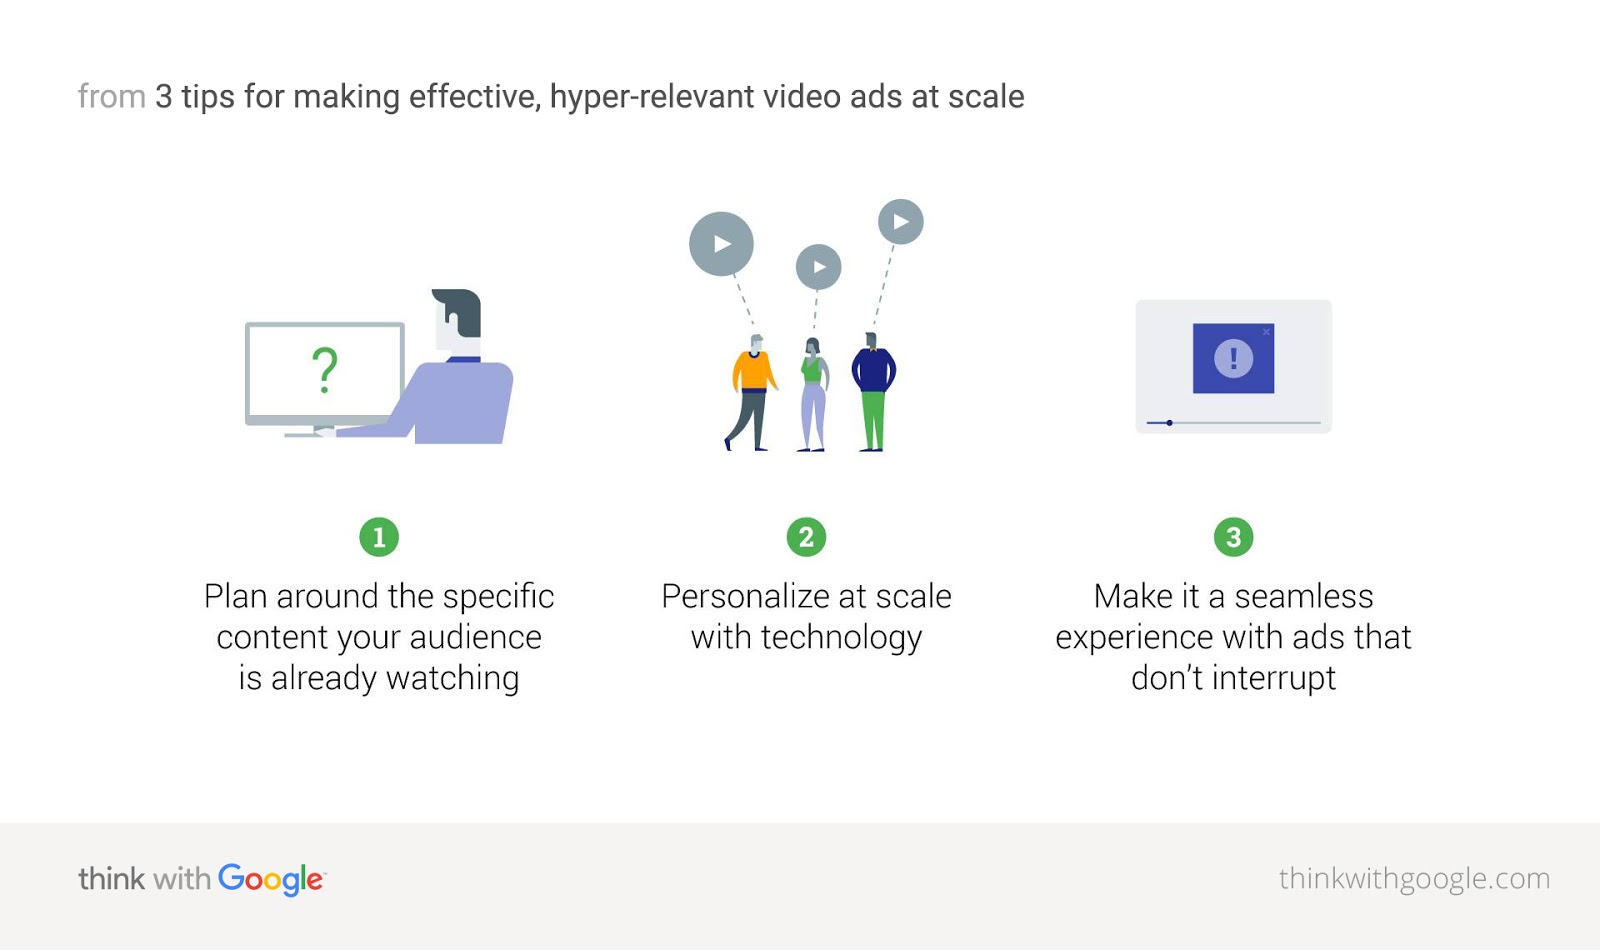 Here are 3 tips for creating hyper-relevant YouTube ads from Google.